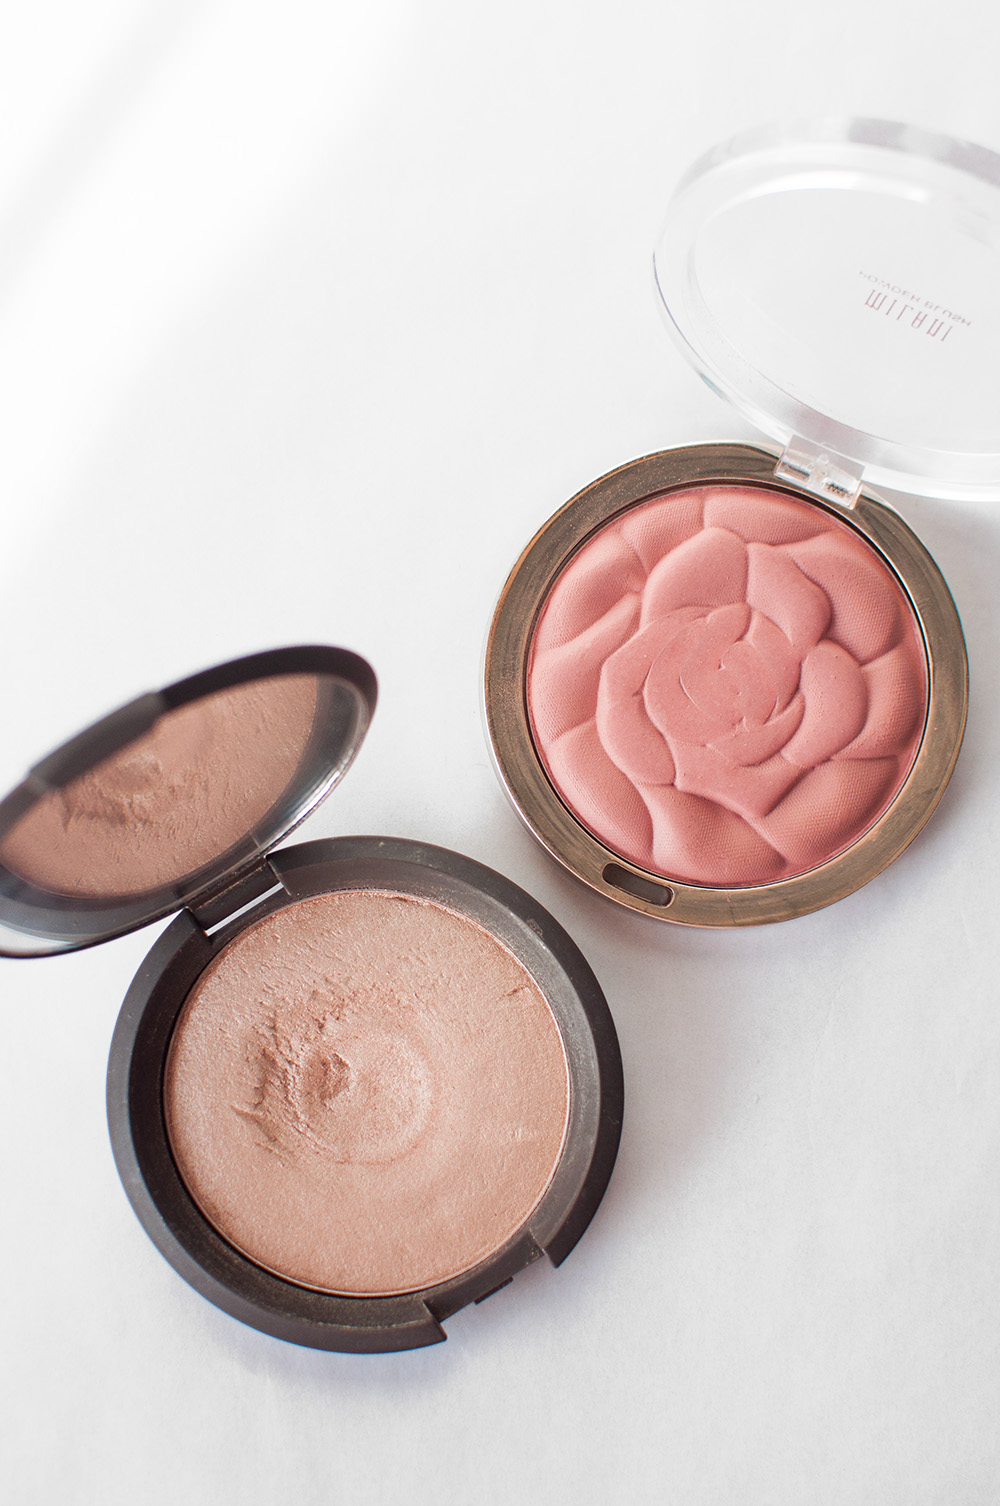 becca shimmering skin perfector pressed opal, milani rose blush, milani romantic rose blush